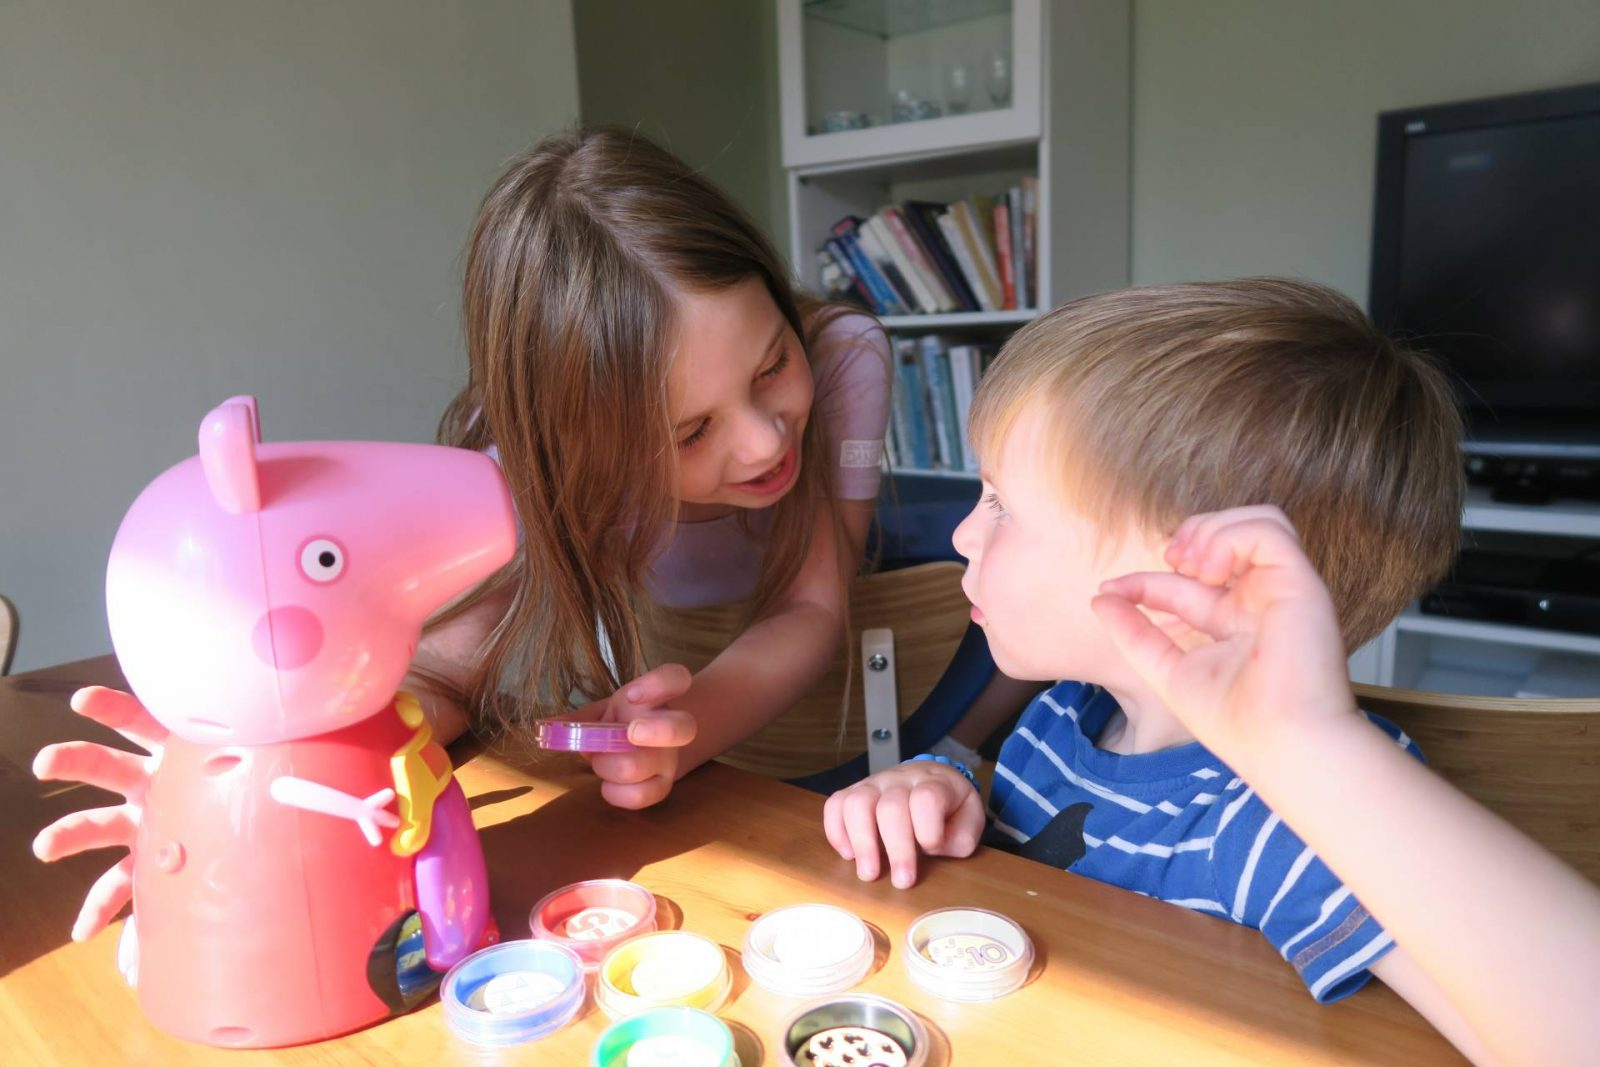 Count With Peppa Interactive Money Box Toy Review + Giveaway!